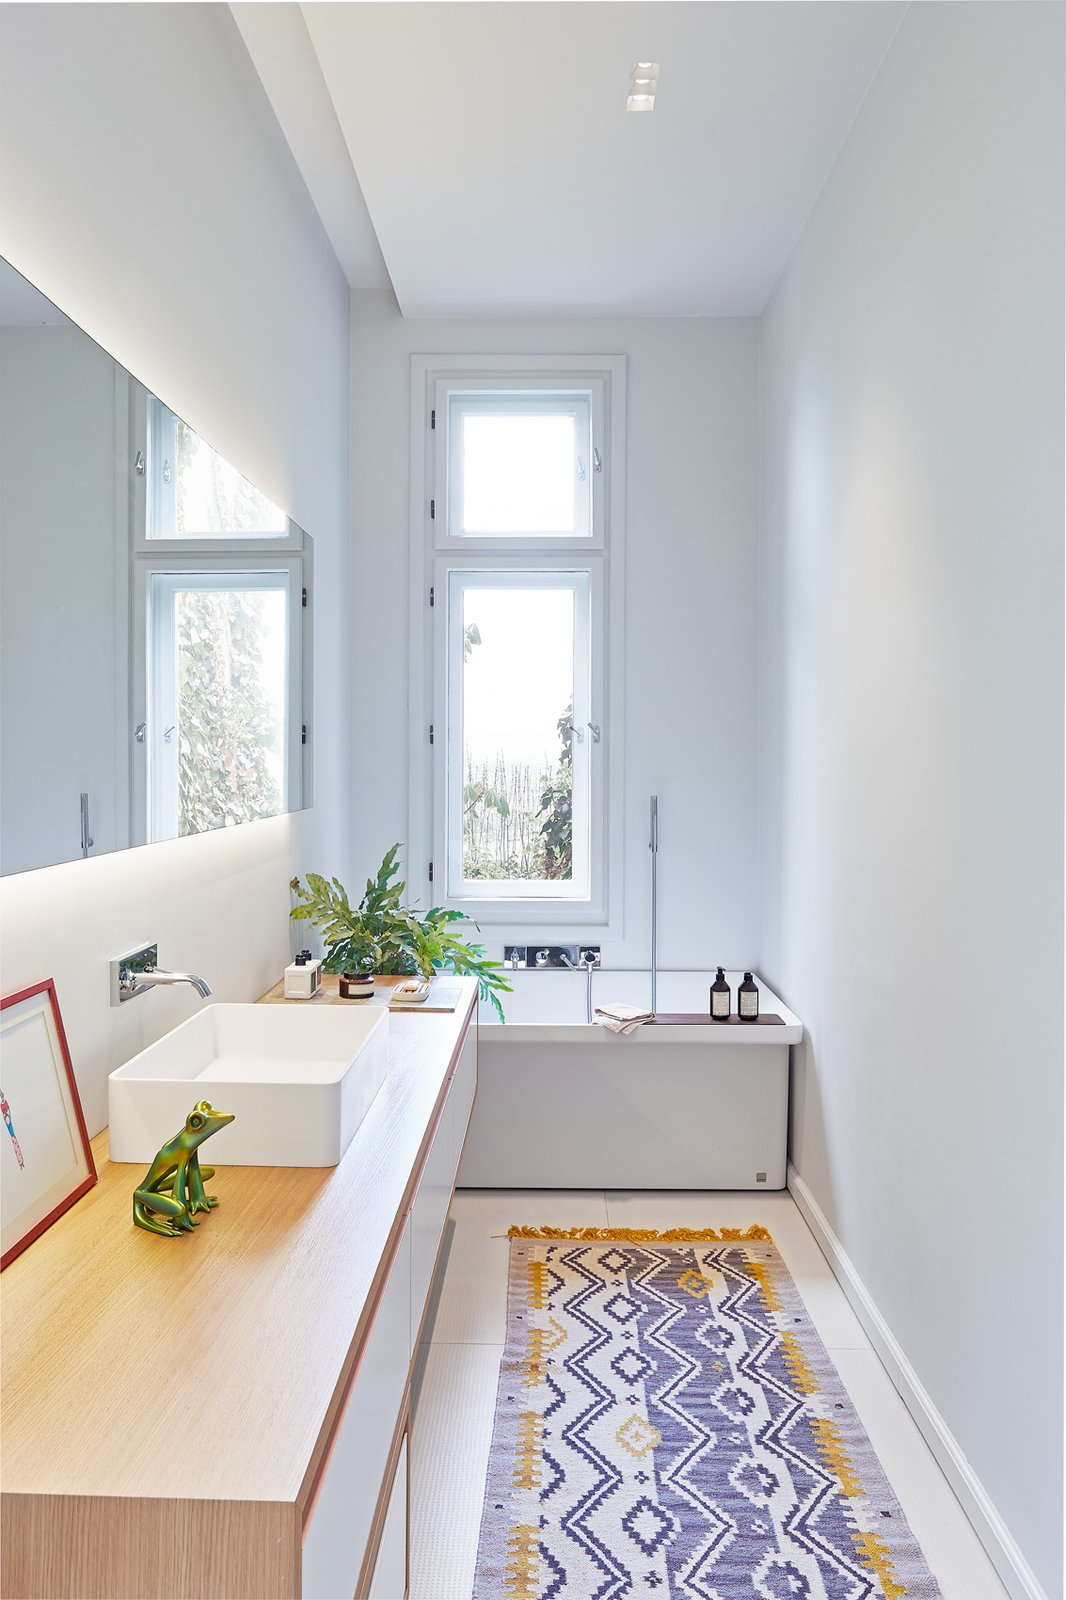 Bath Room, Wood Counter, Rug Floor, Vessel Sink, Alcove Tub, and Recessed Lighting Designed by Hungarian studio POSITION Collective, this 2,099-square-foot, two-story villa on Rezeda Street in the Pest area of Budapest is home to a family of four. Within, herringbone wood floors, geometric details on the ceilings, quirky lighting, furniture with interesting textures and colors, and framed artwork and photography come together to create a jaw-dropping contemporary home.  Photo 8 of 17 in A Family Villa in Budapest With Colorful, 1960s-Inspired Interiors